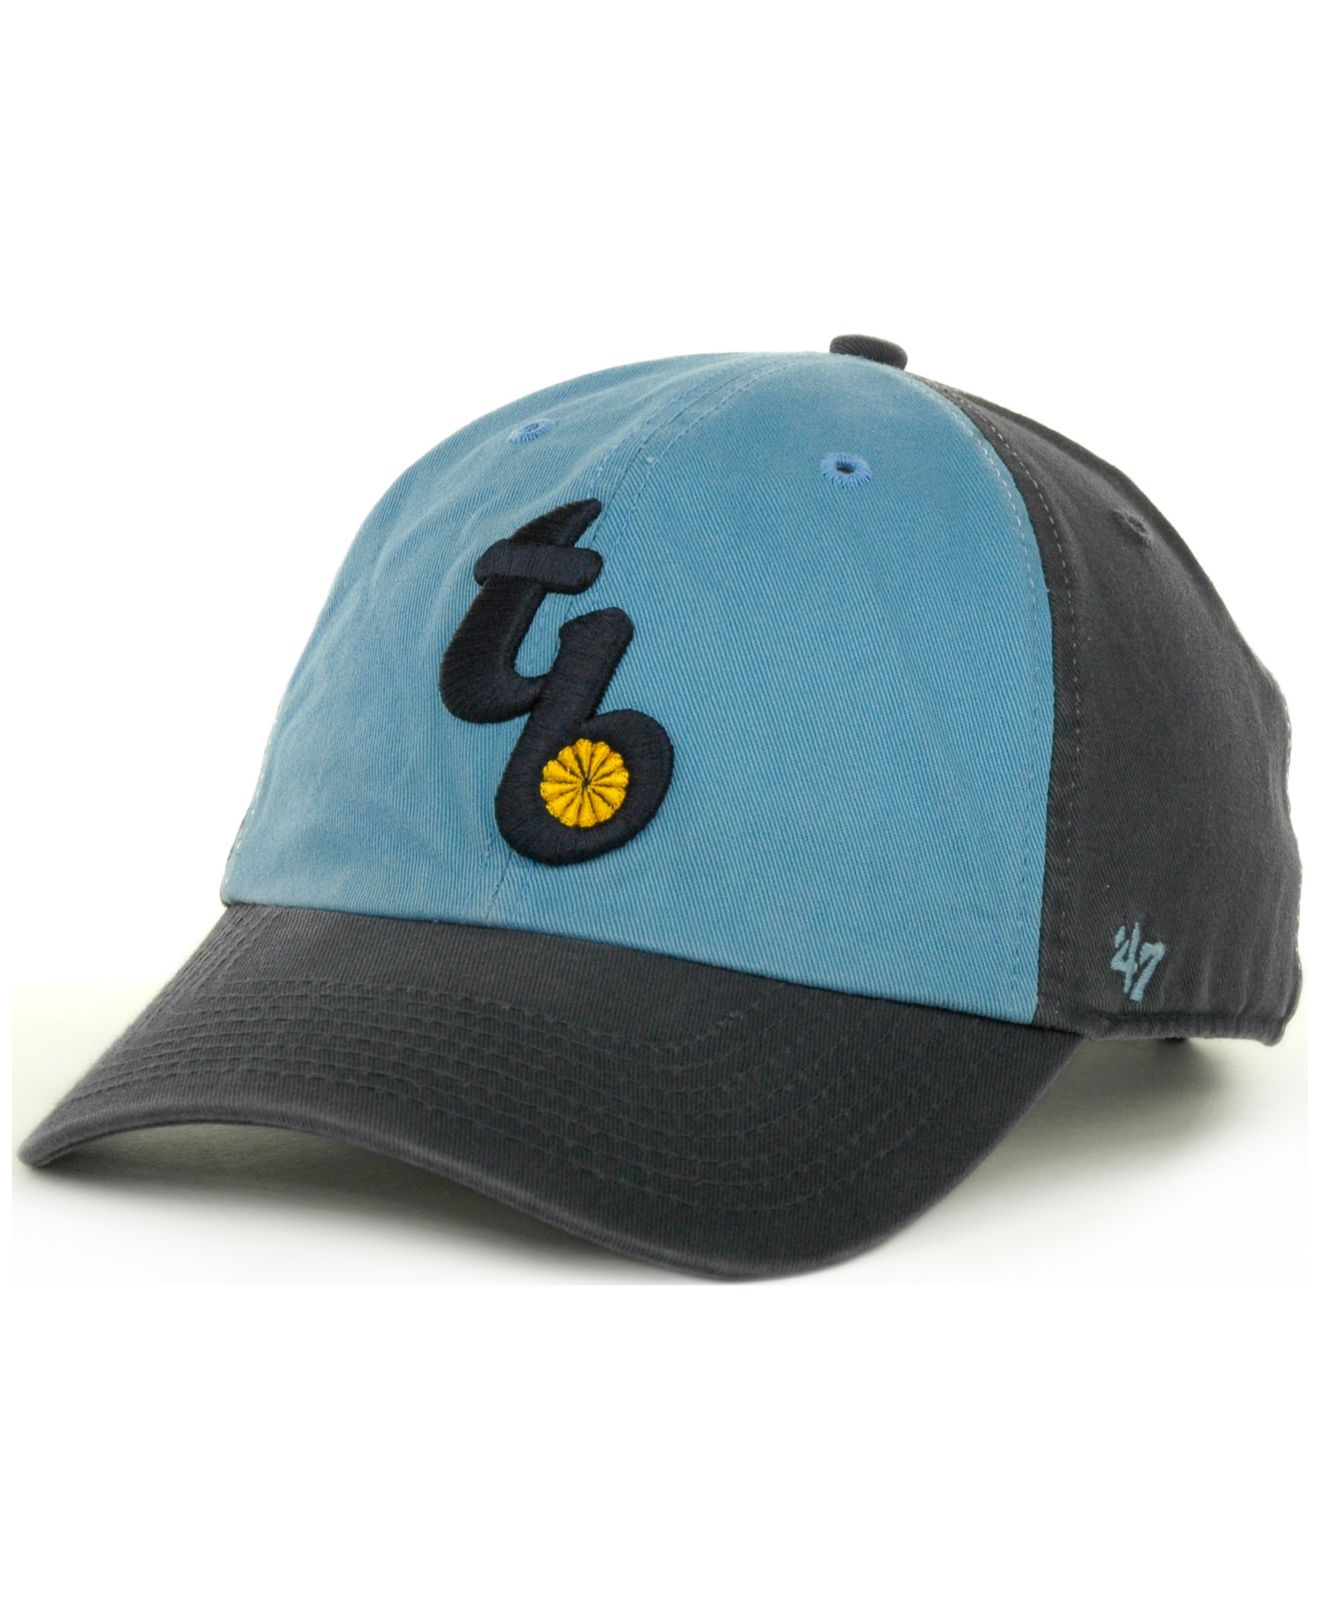 47-brand-blue-tampa-bay-rays-clean-up-ha